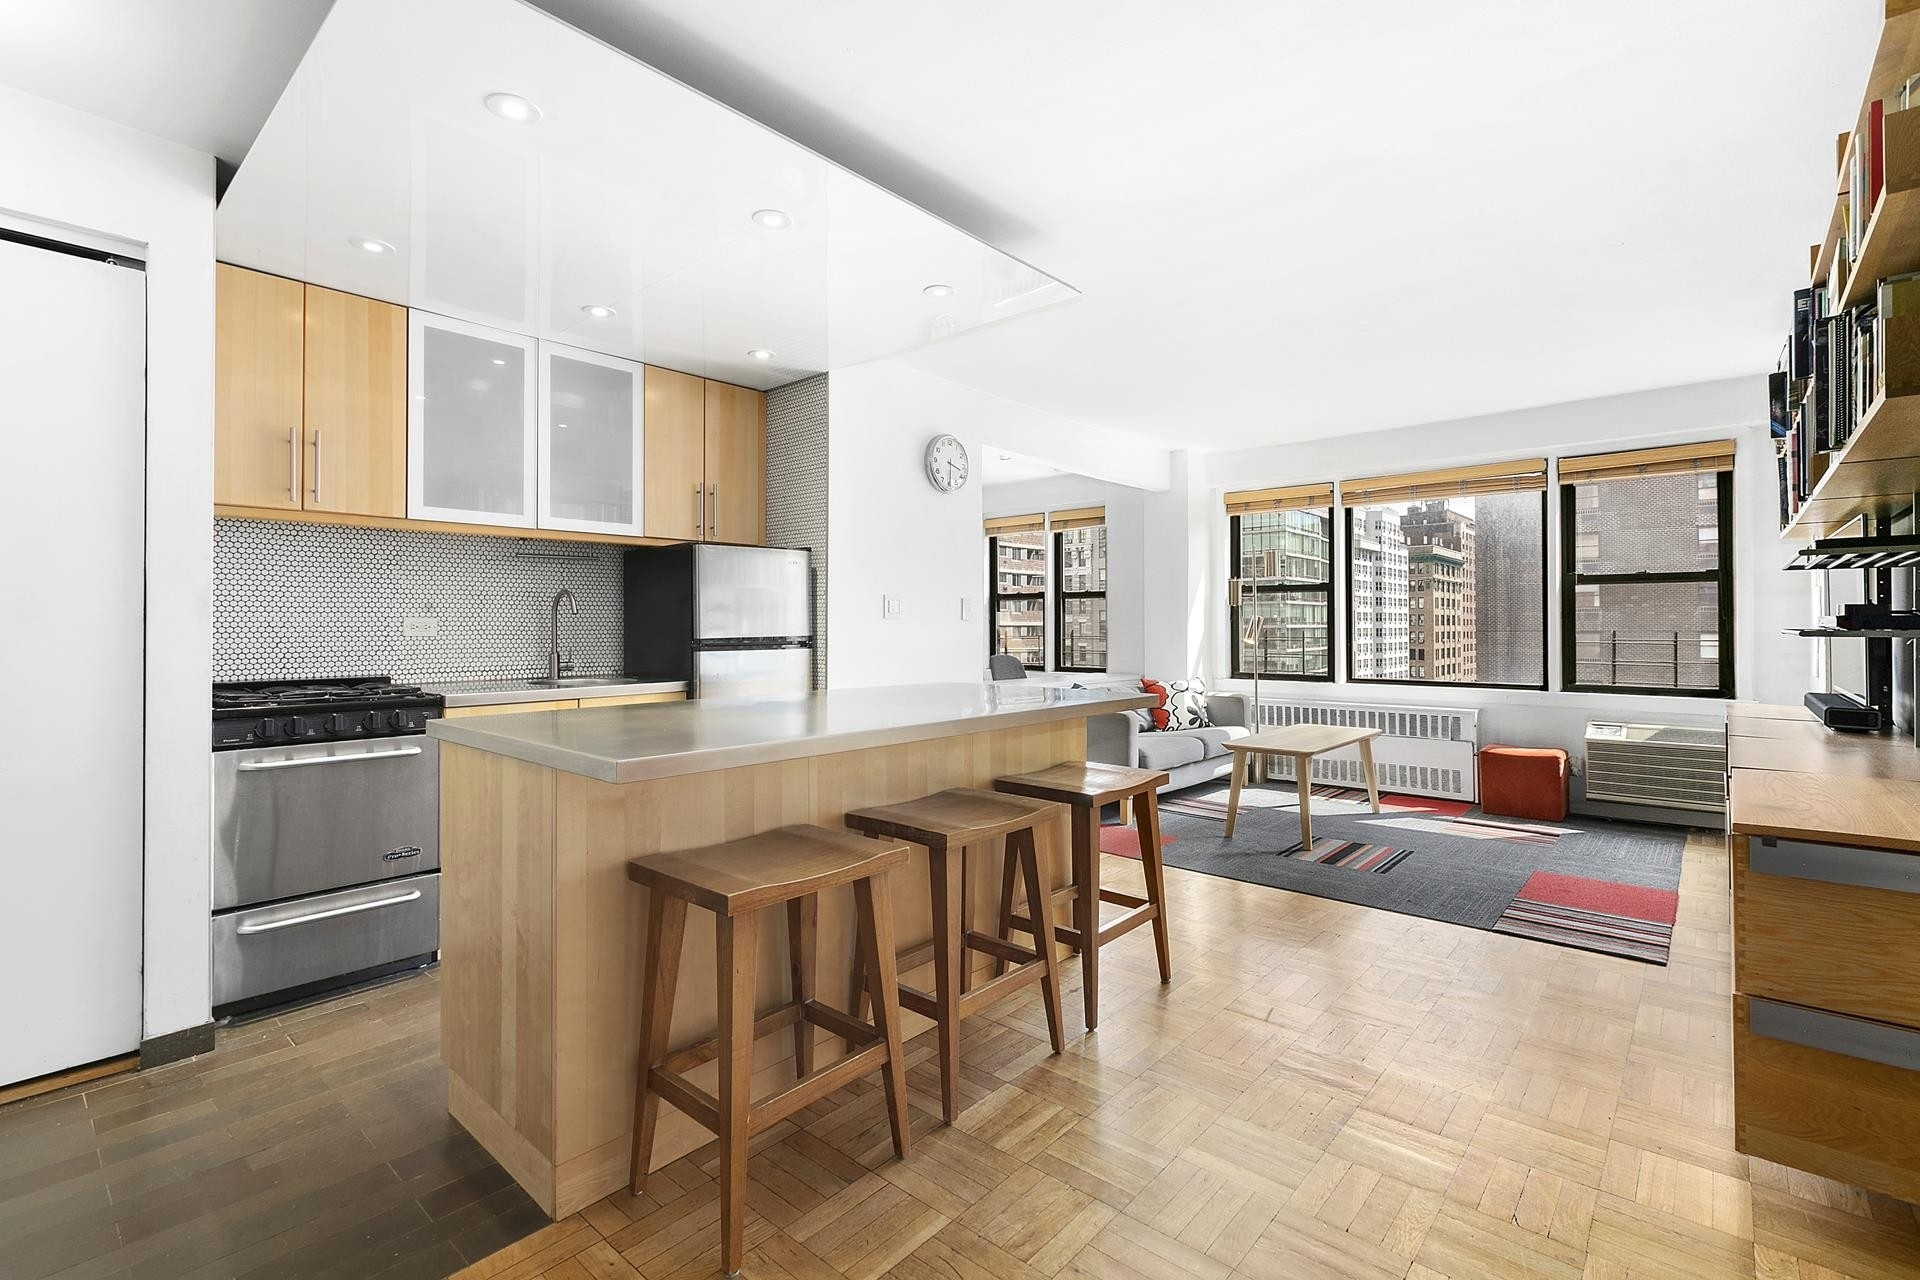 Property at TRACY TOWERS, 245 East 24th St, 9HJ Kip's Bay, New York, NY 10010